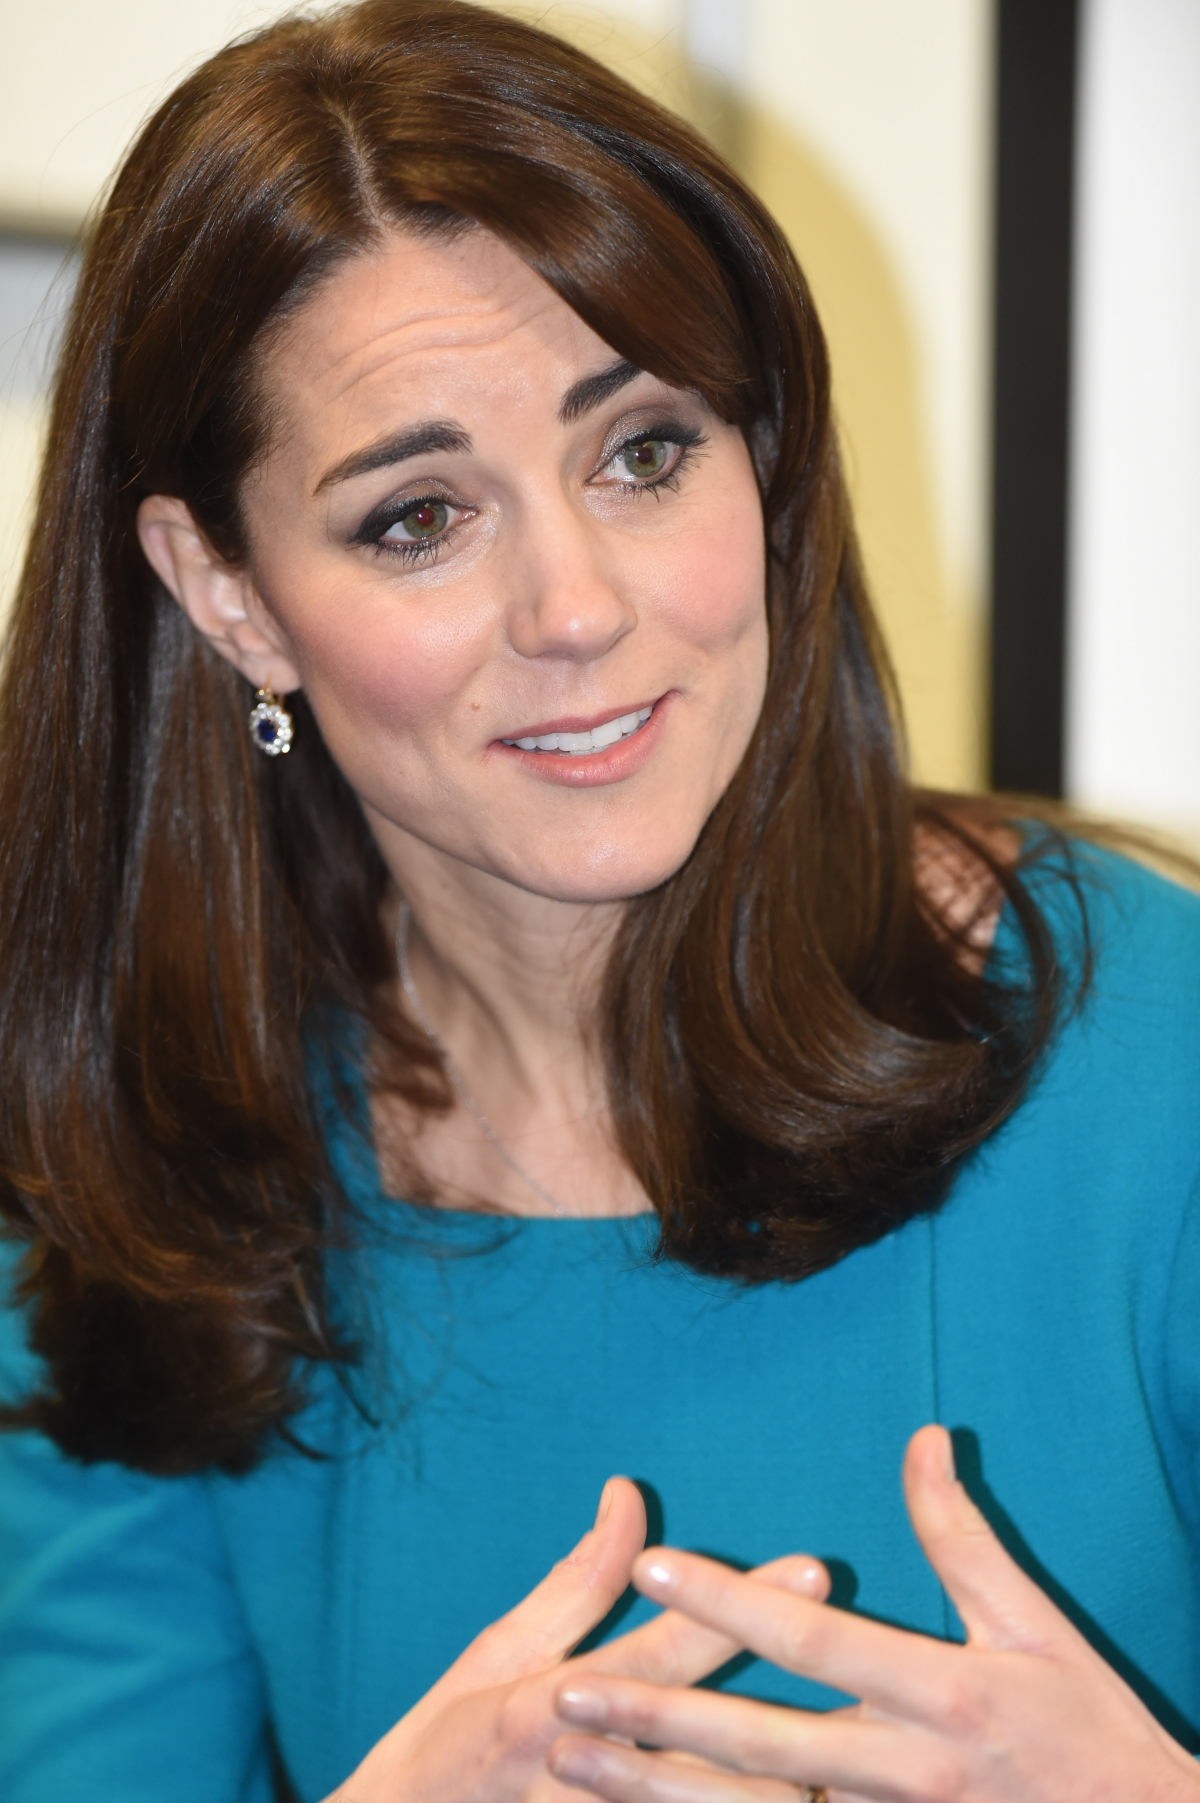 International Business Degree >> Kate Middleton described as 'incredibly warm' during ...